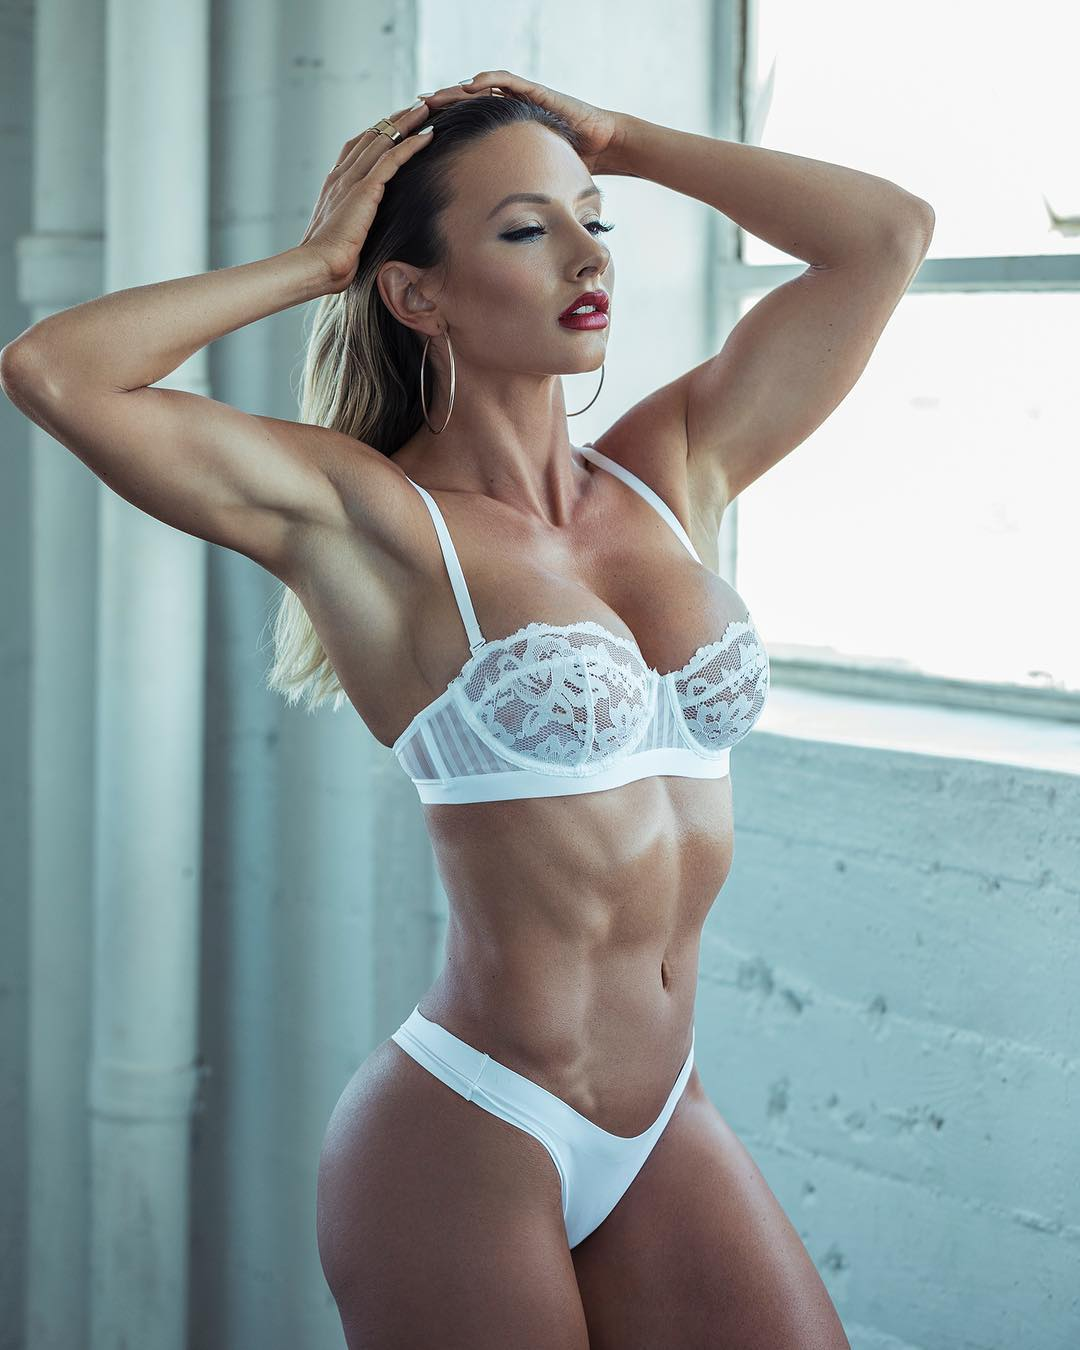 Cleavage Paige Hathaway  nude (67 pictures), Twitter, lingerie